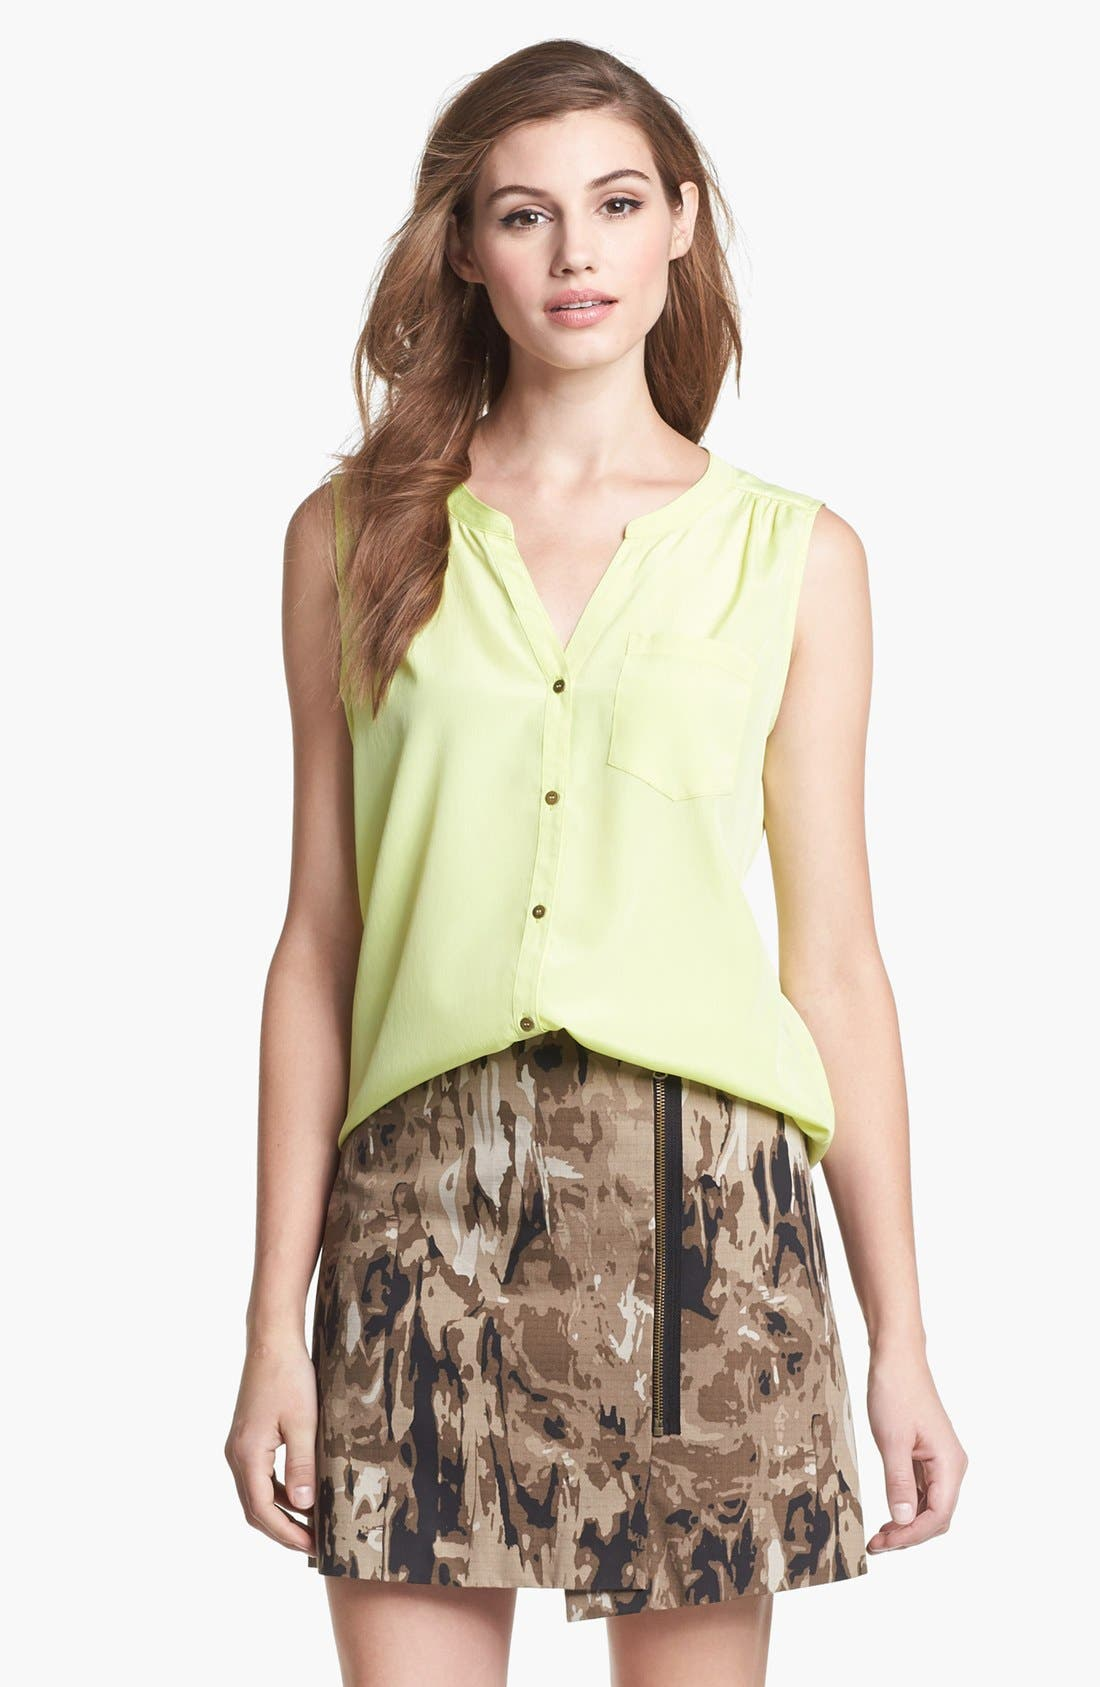 Main Image - Kenneth Cole New York 'Jolie' Sleeveless Blouse